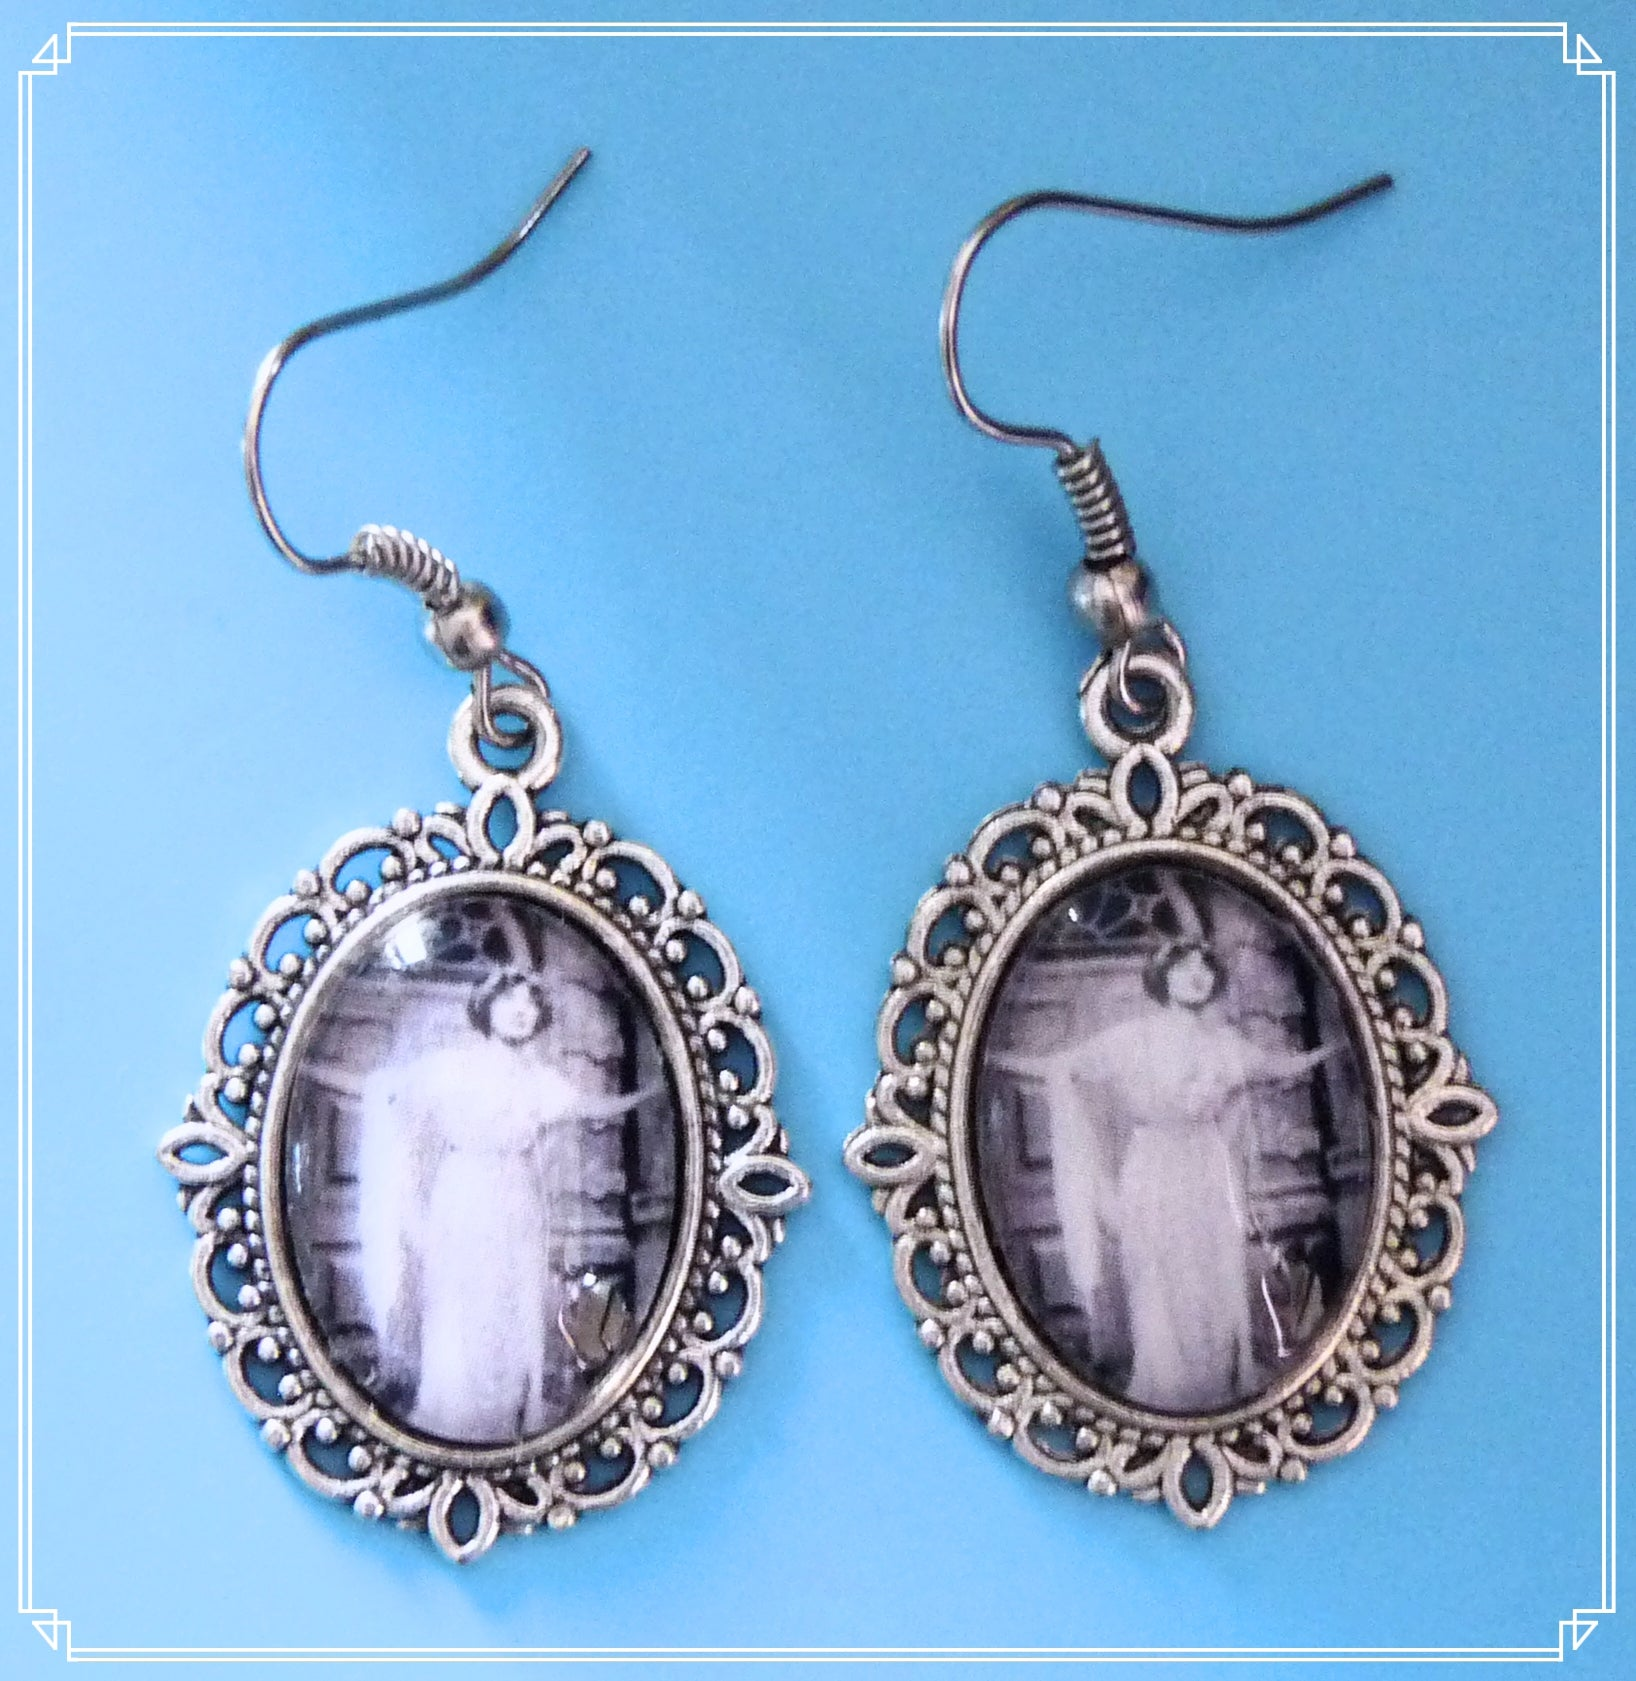 Velvet & Lace - Imogene earrings